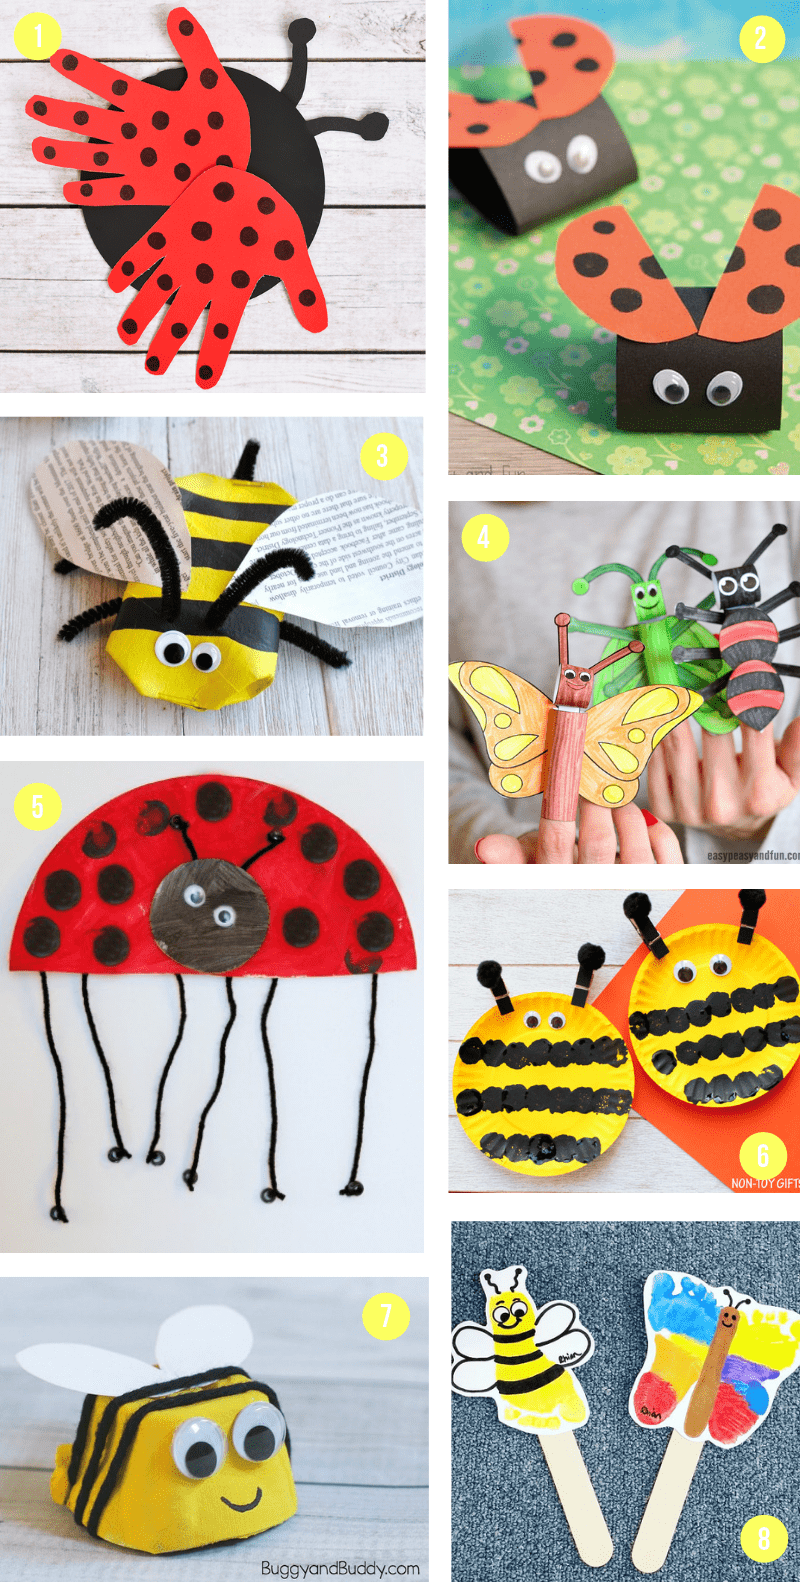 The Best Spring Crafts For Kids With Ladybugs Bumble Bees And More